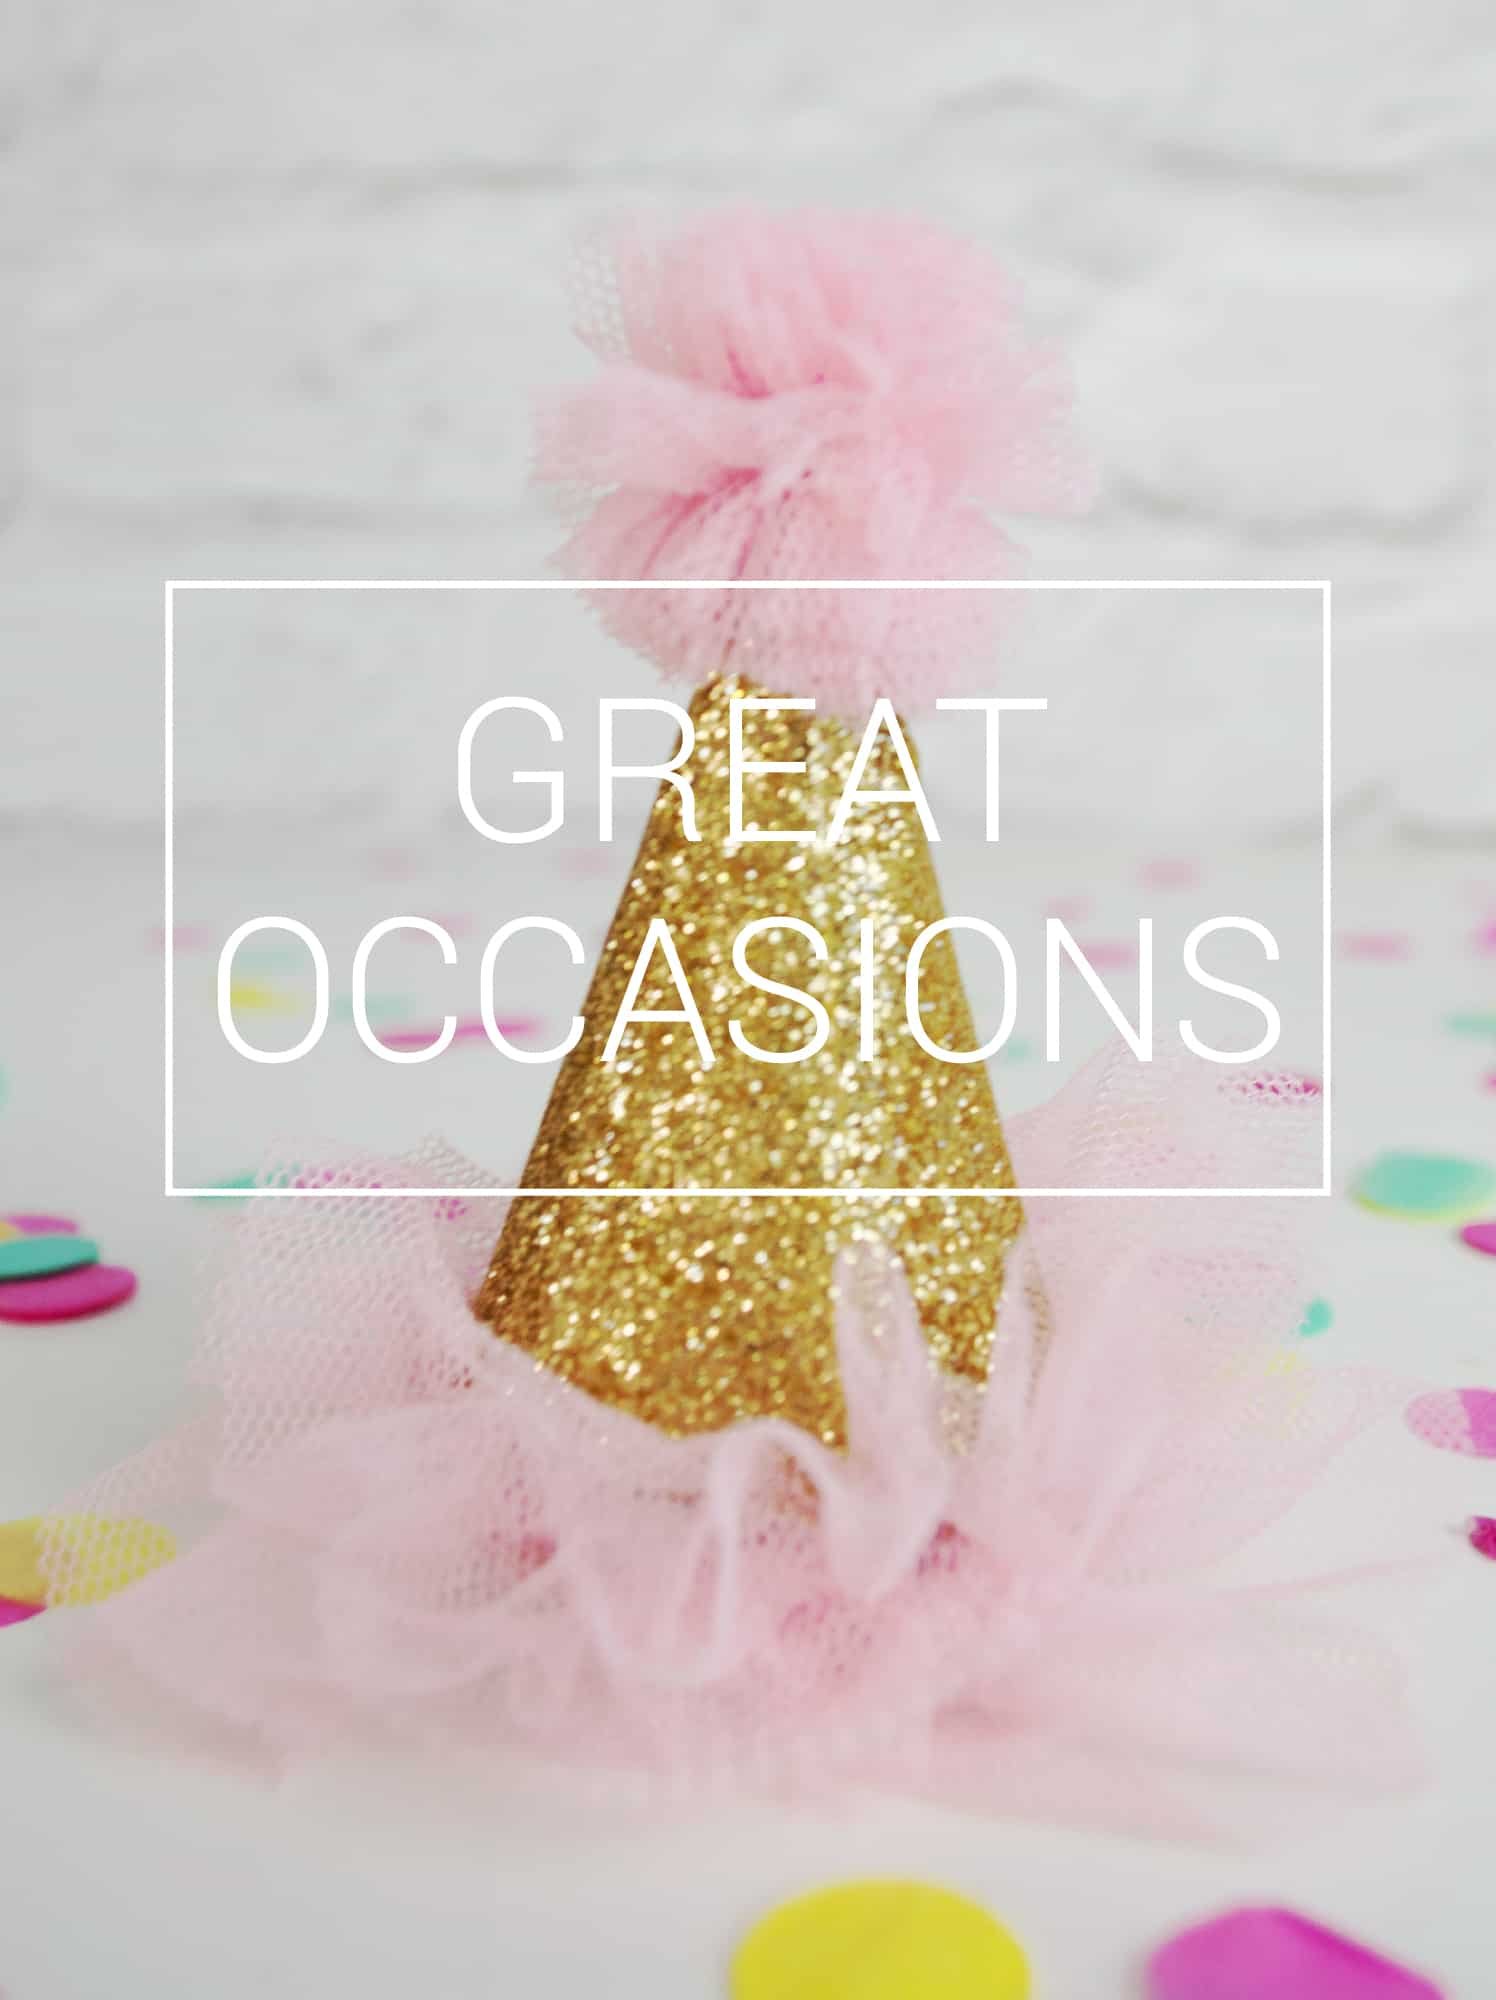 great-occations-01